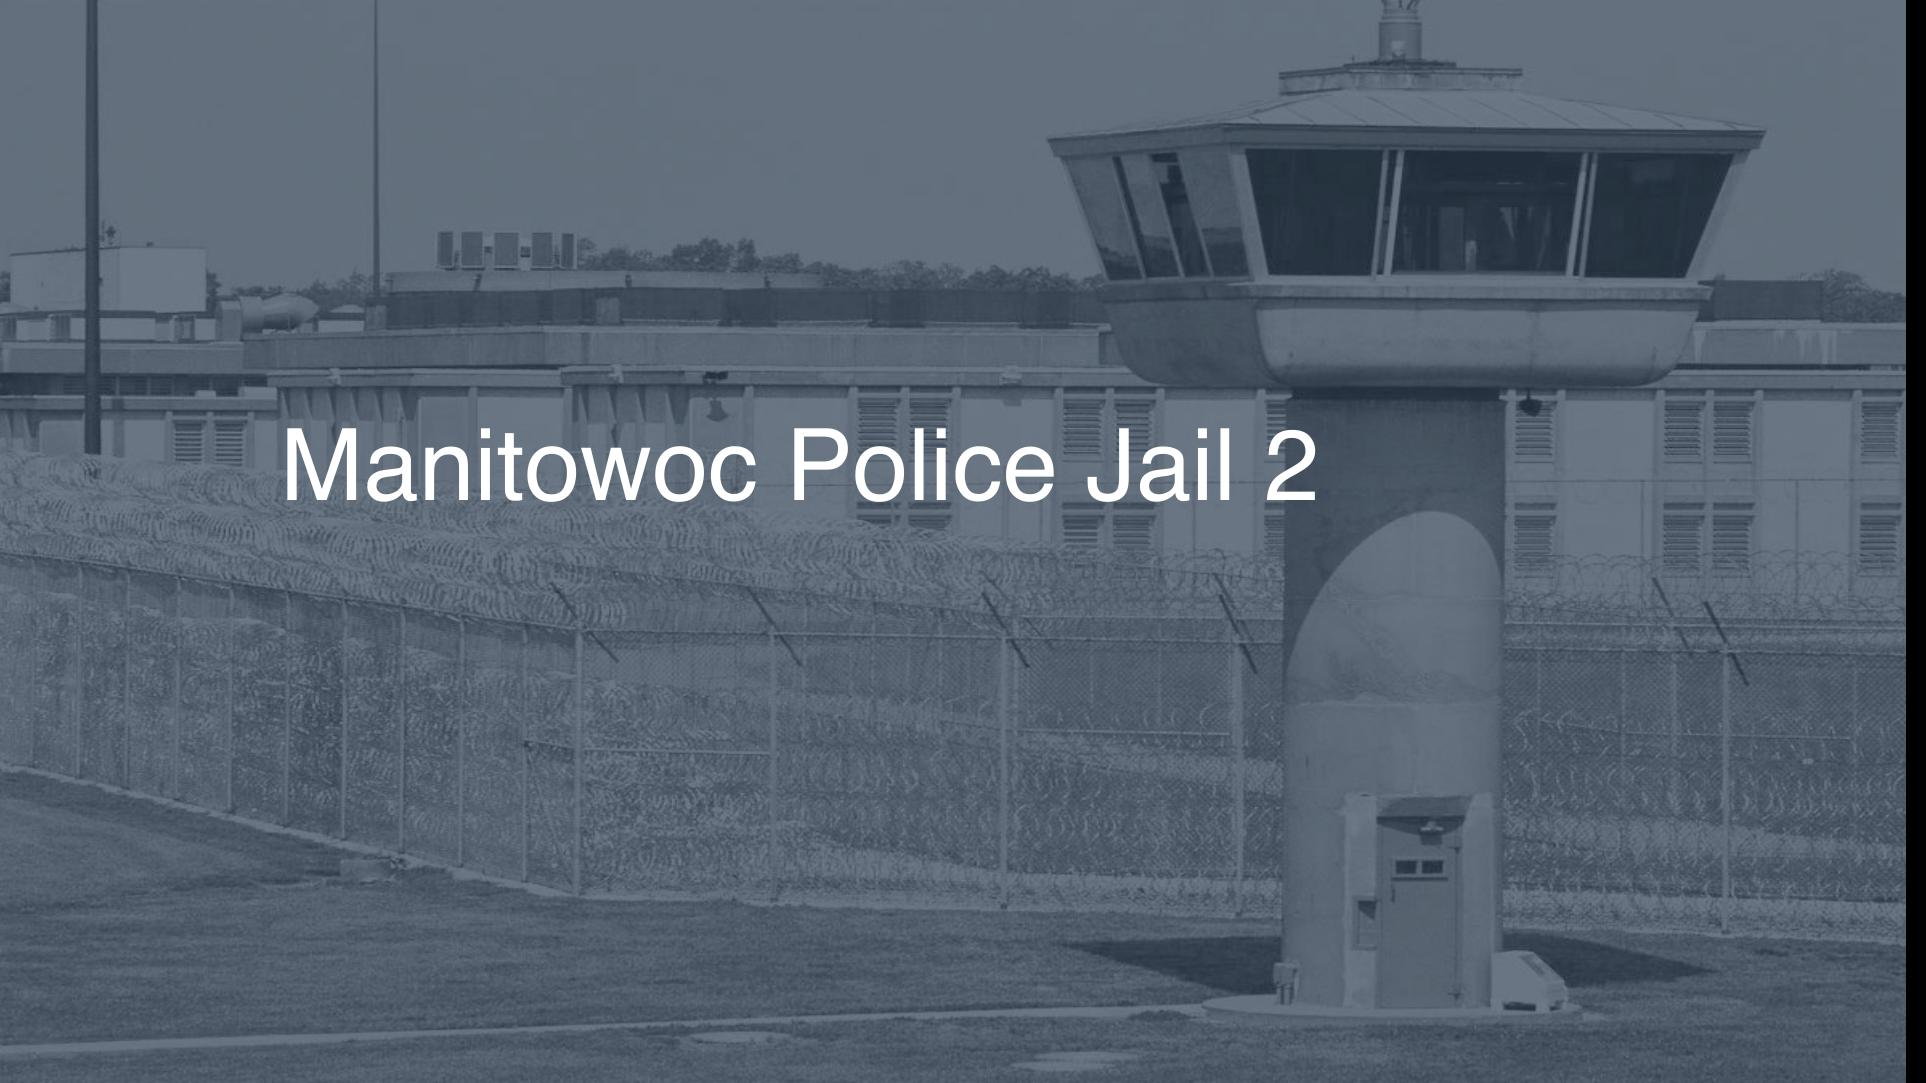 Manitowoc Police Jail | Pigeonly - Inmate Search, Locate